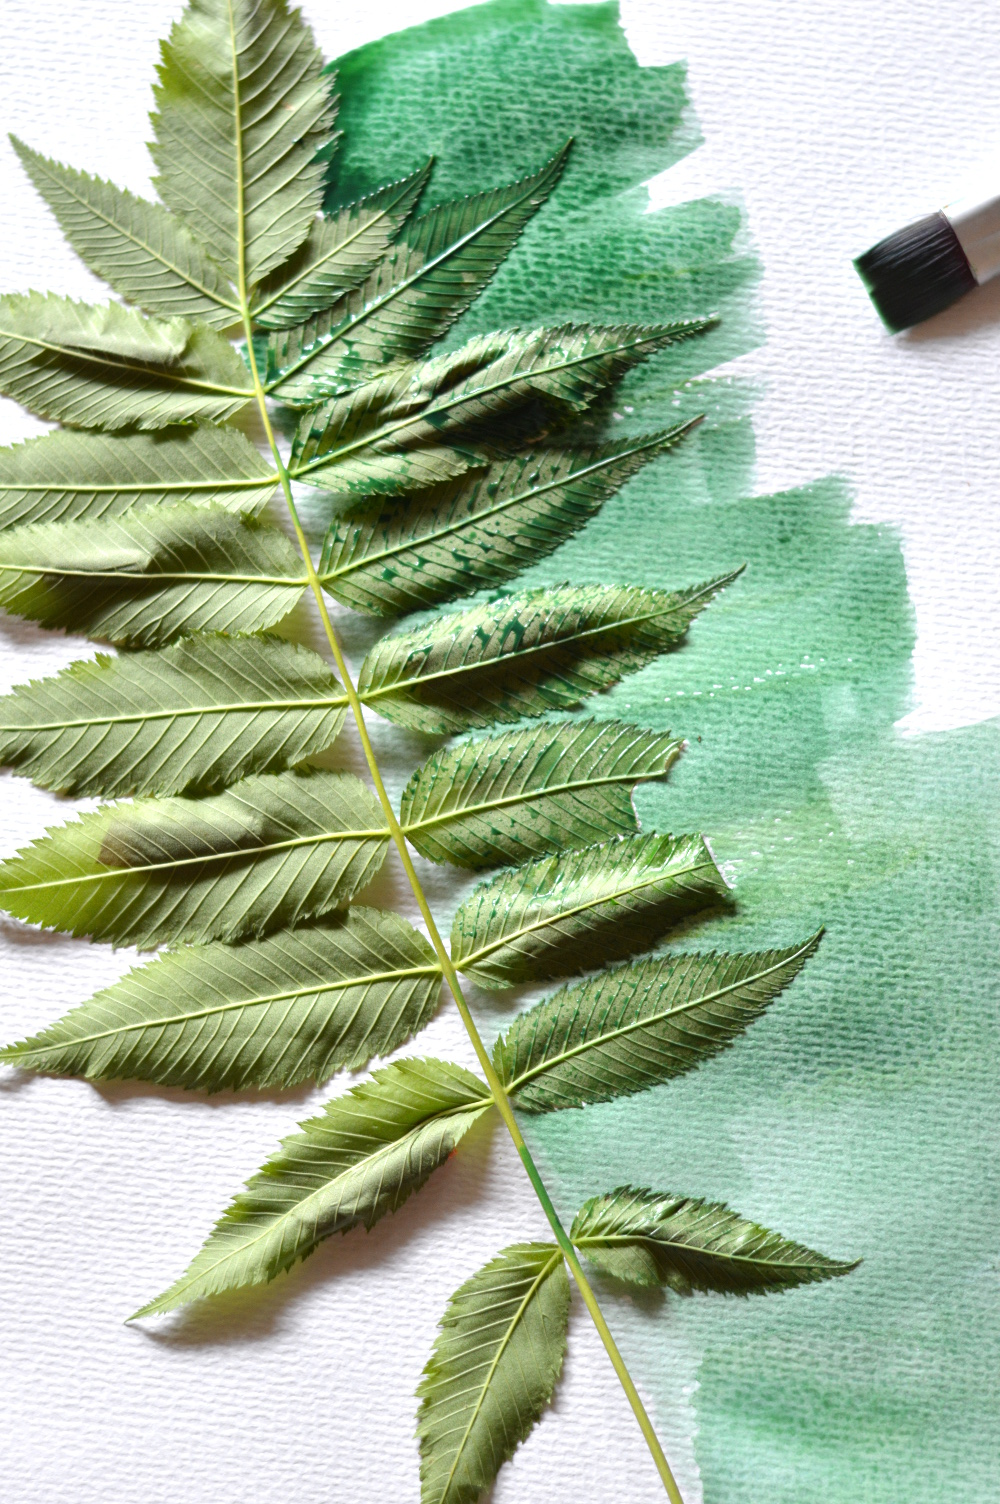 Watercolor Leaf Prints - Using simple techniques, this pretty leaf painting is lovely way to brighten a room and is very beginner-friendly.